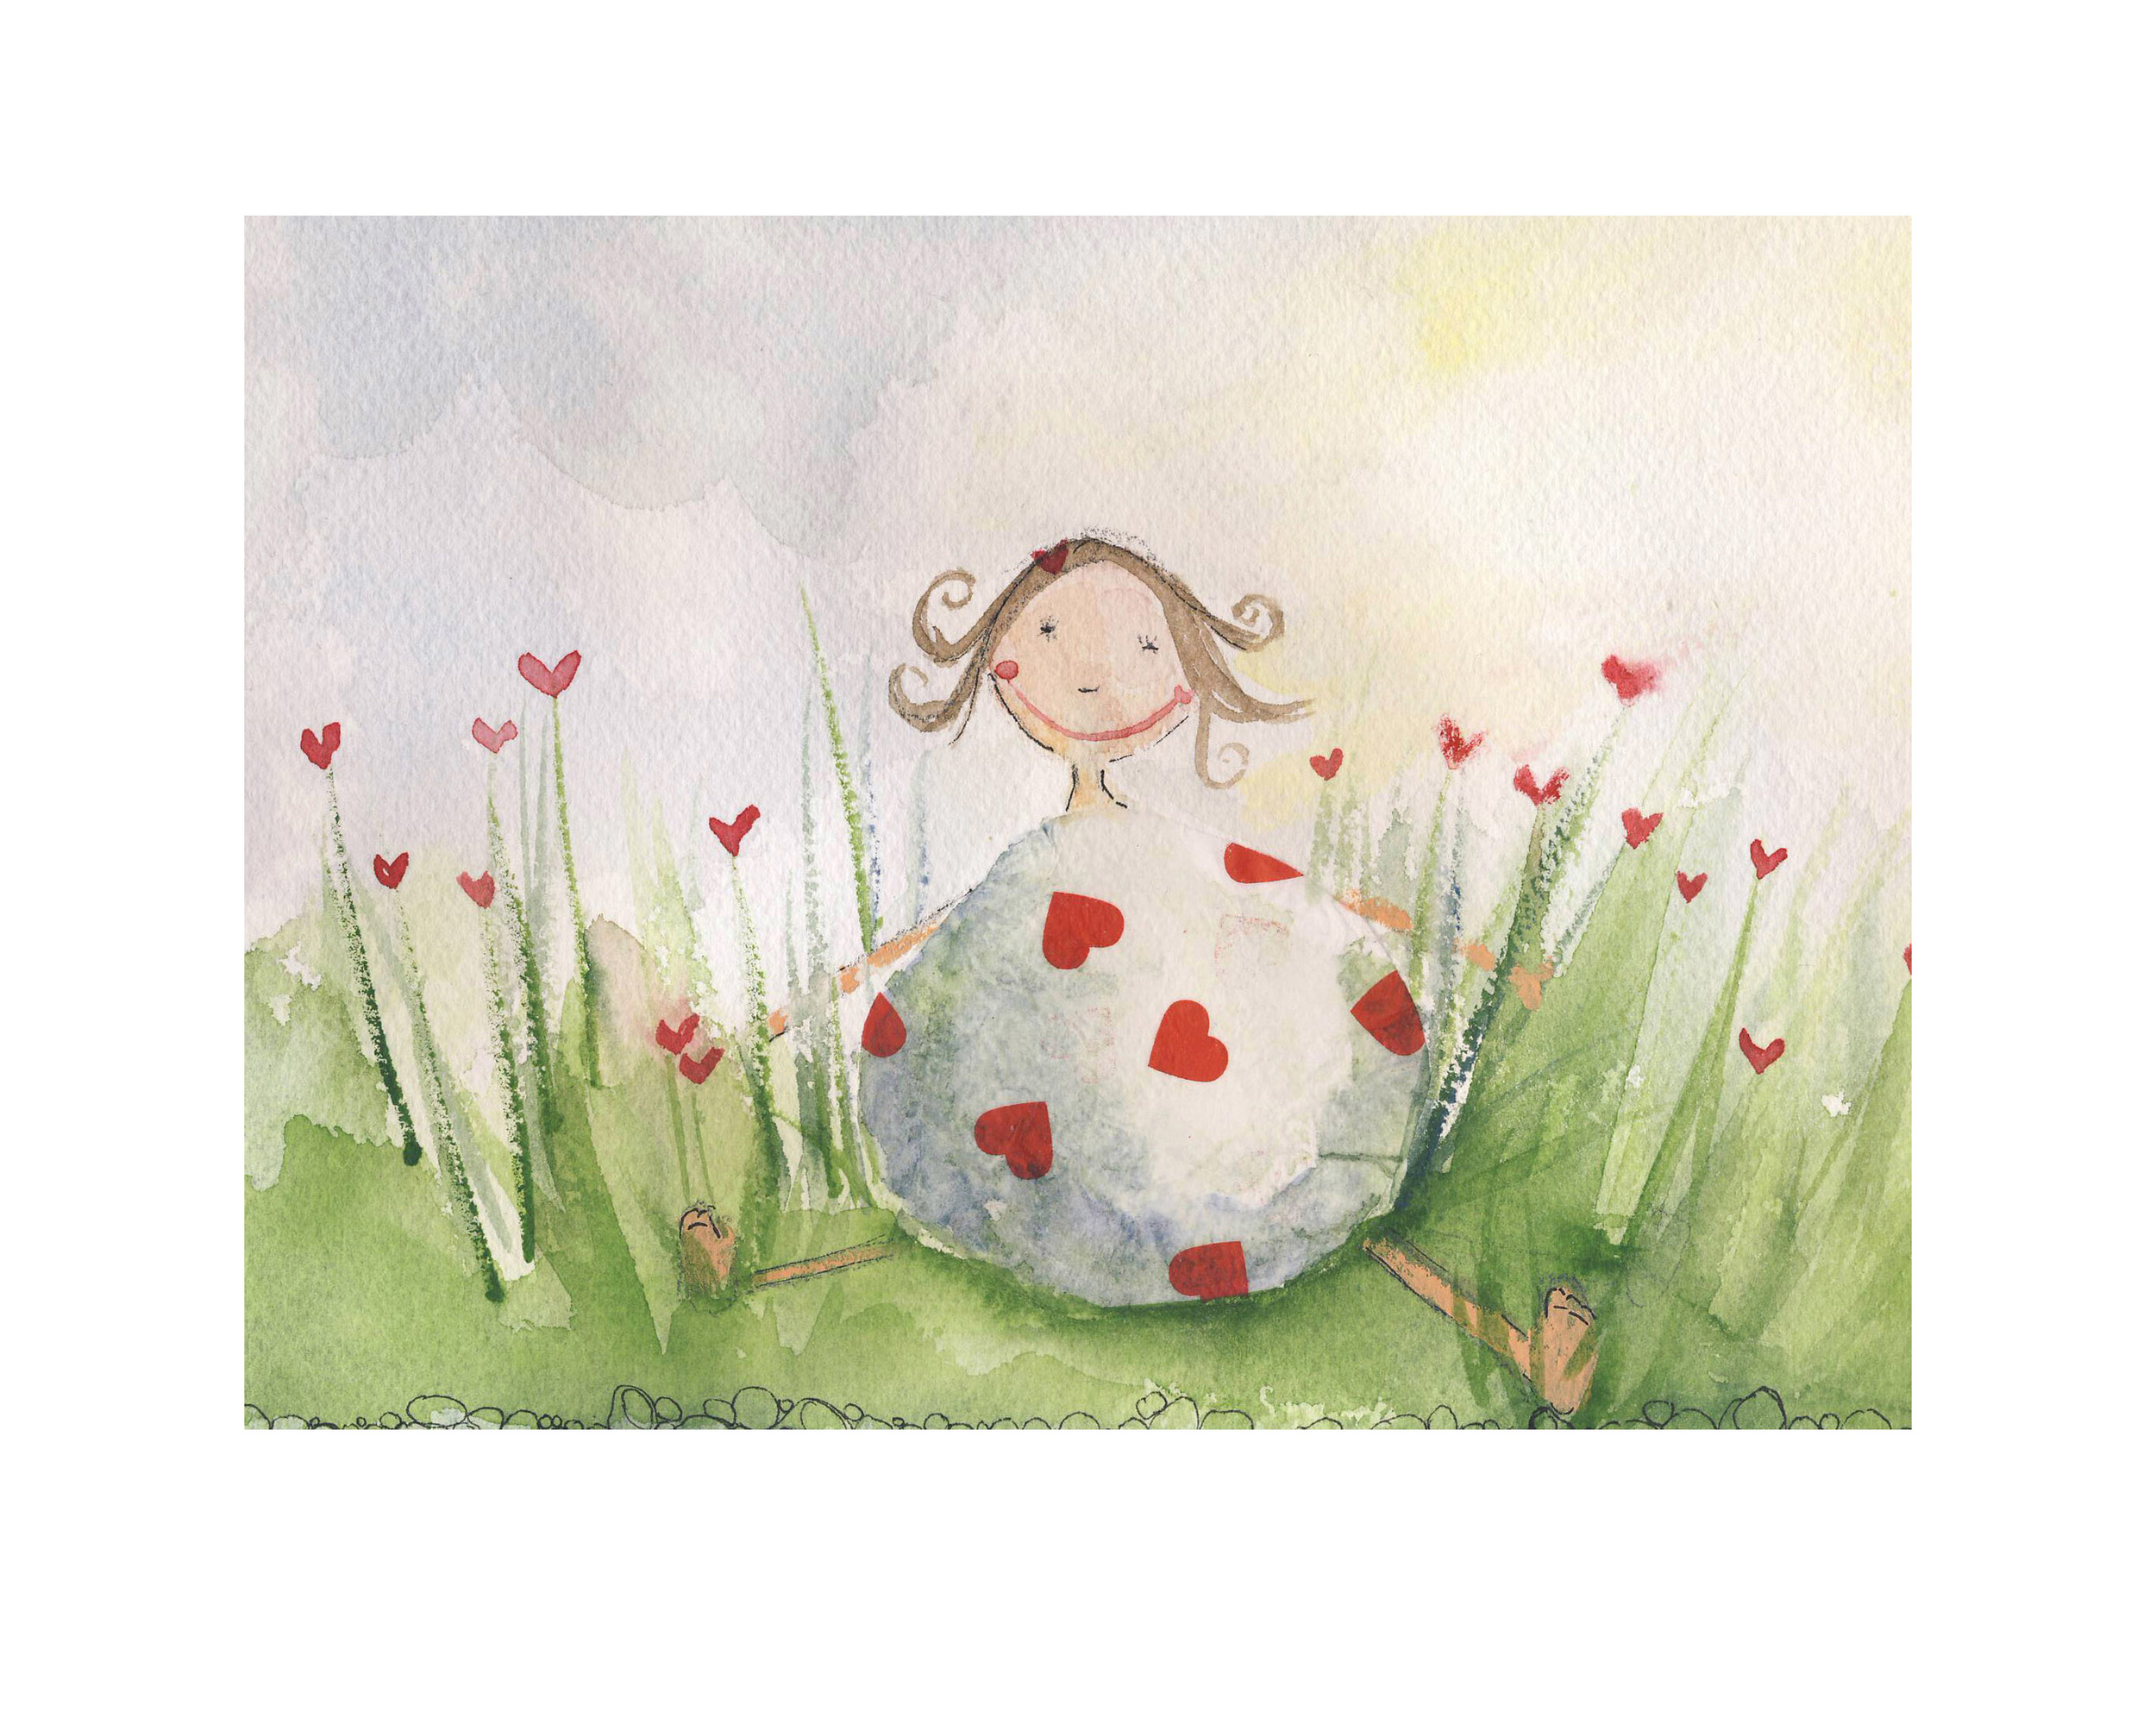 Little Miss Love, Watercolor and Collage, 2010